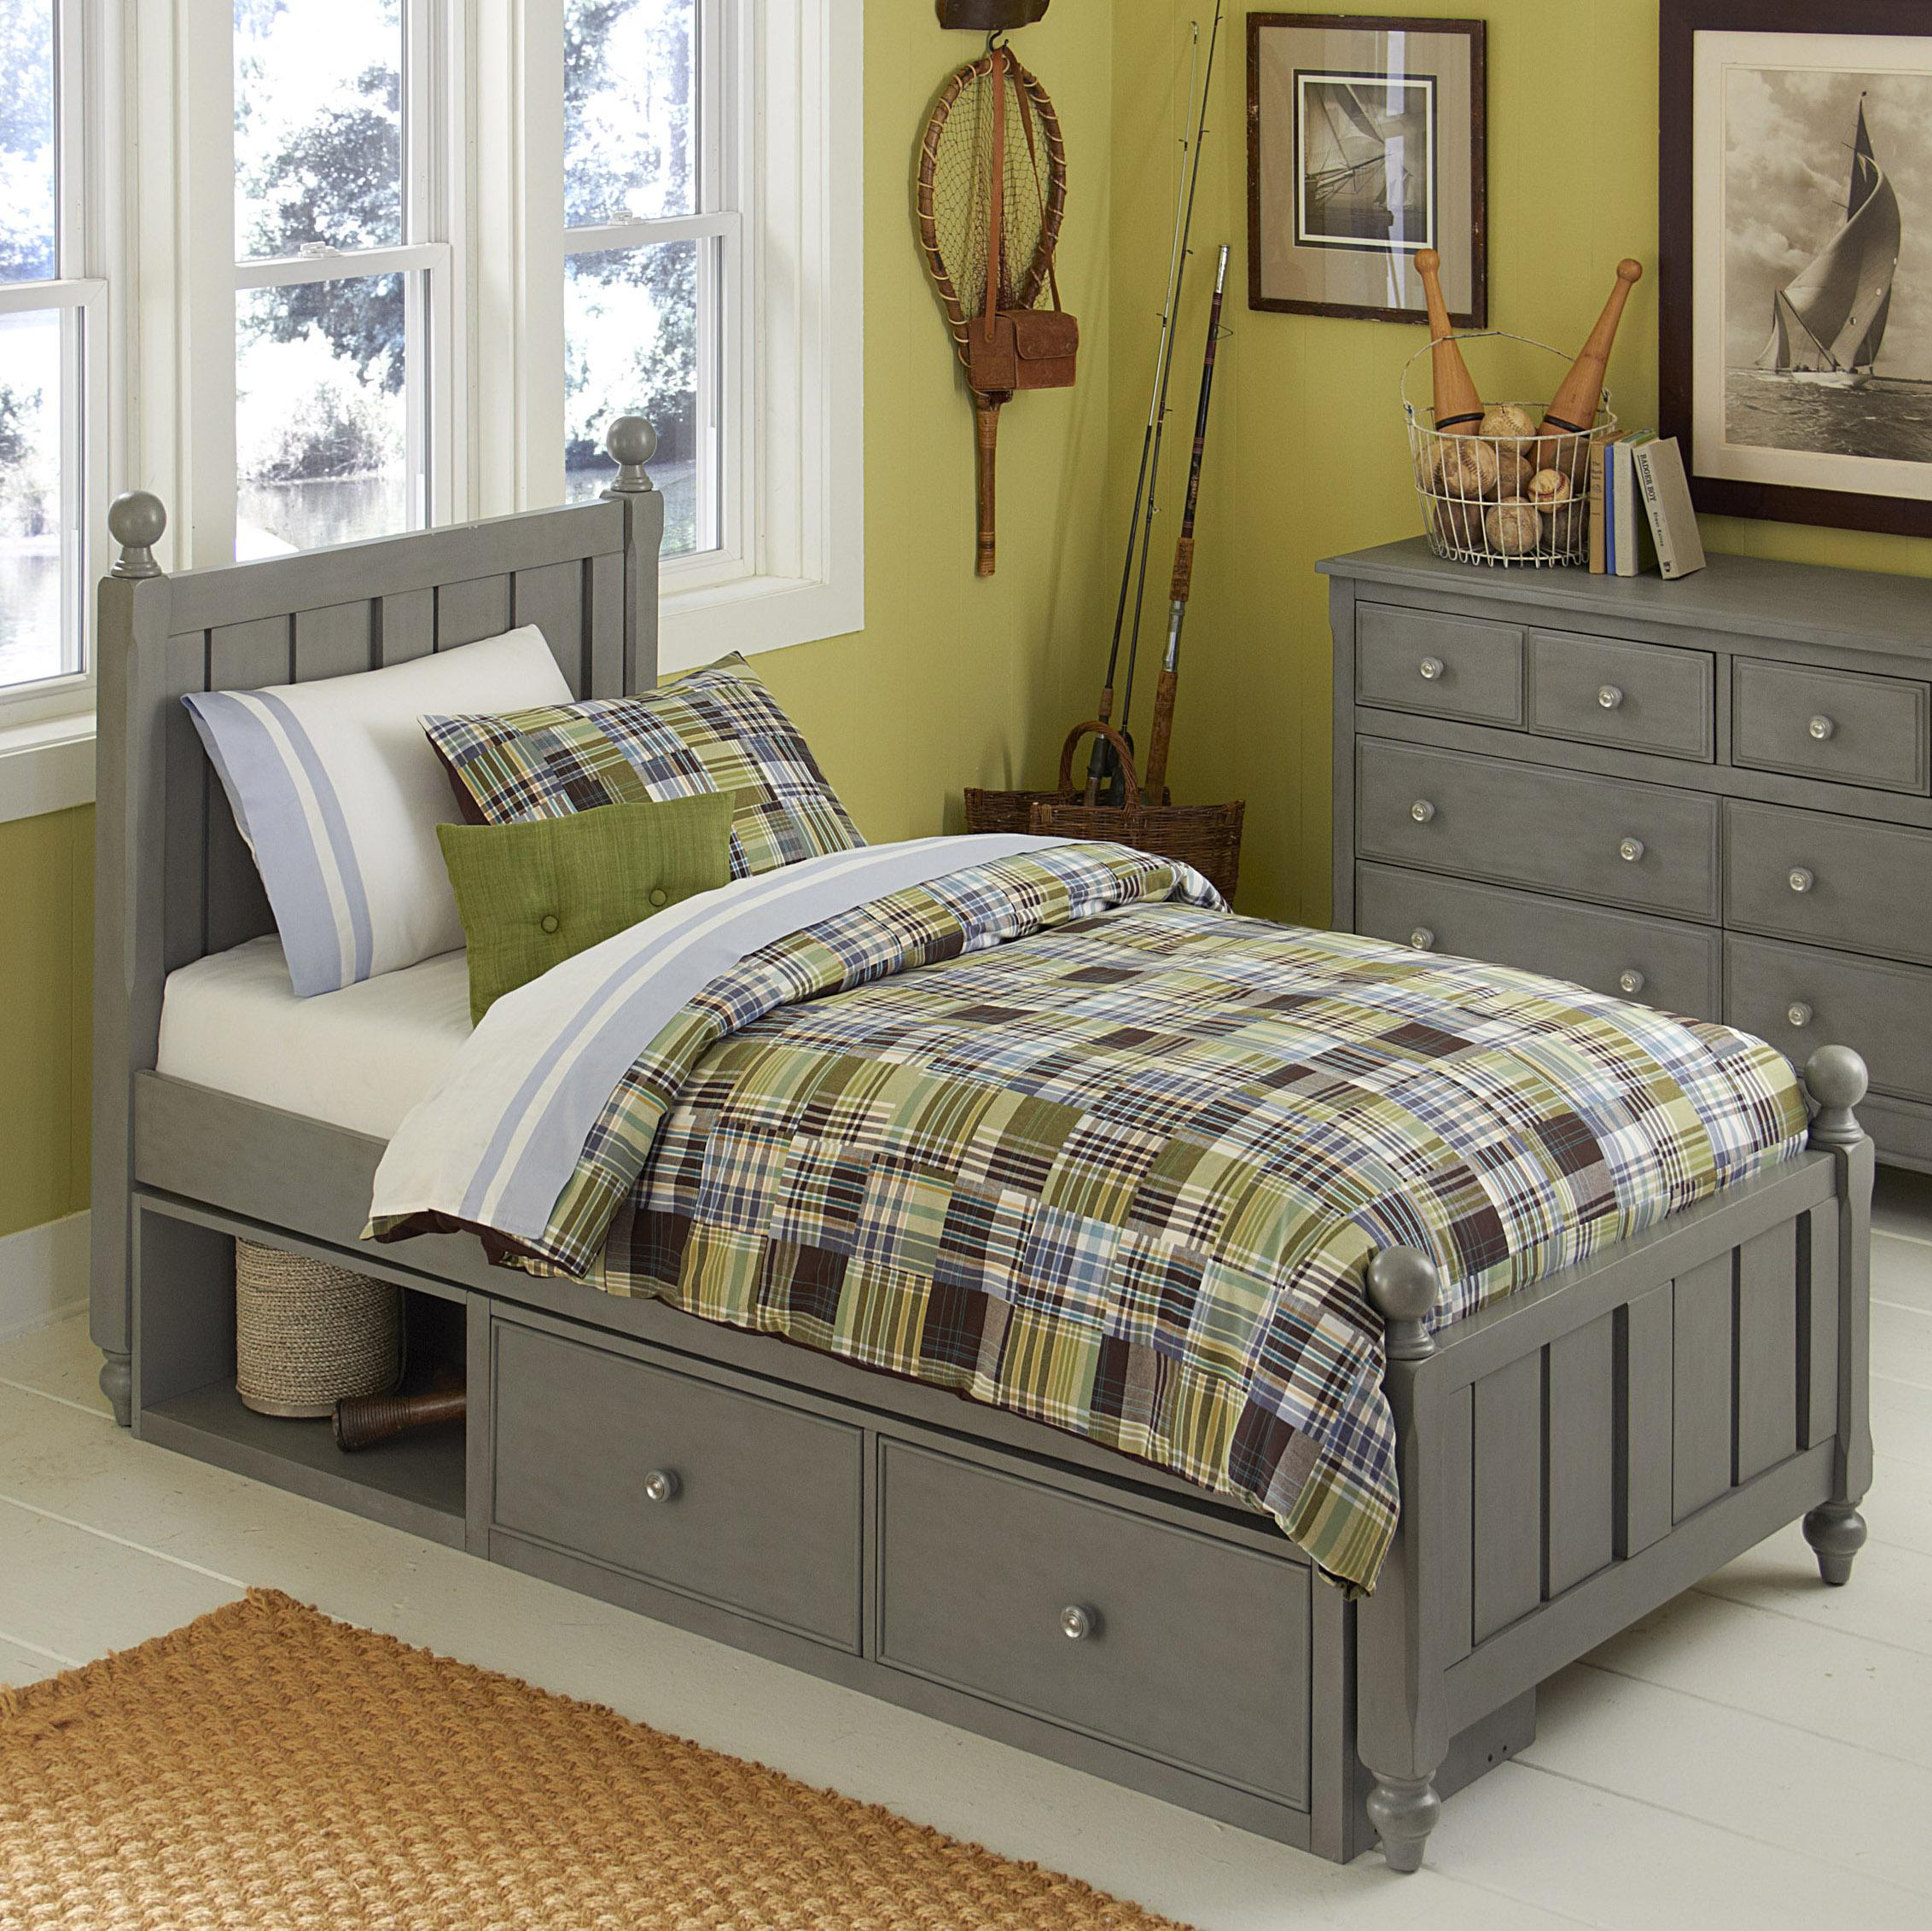 lake house twin bed and storage unit